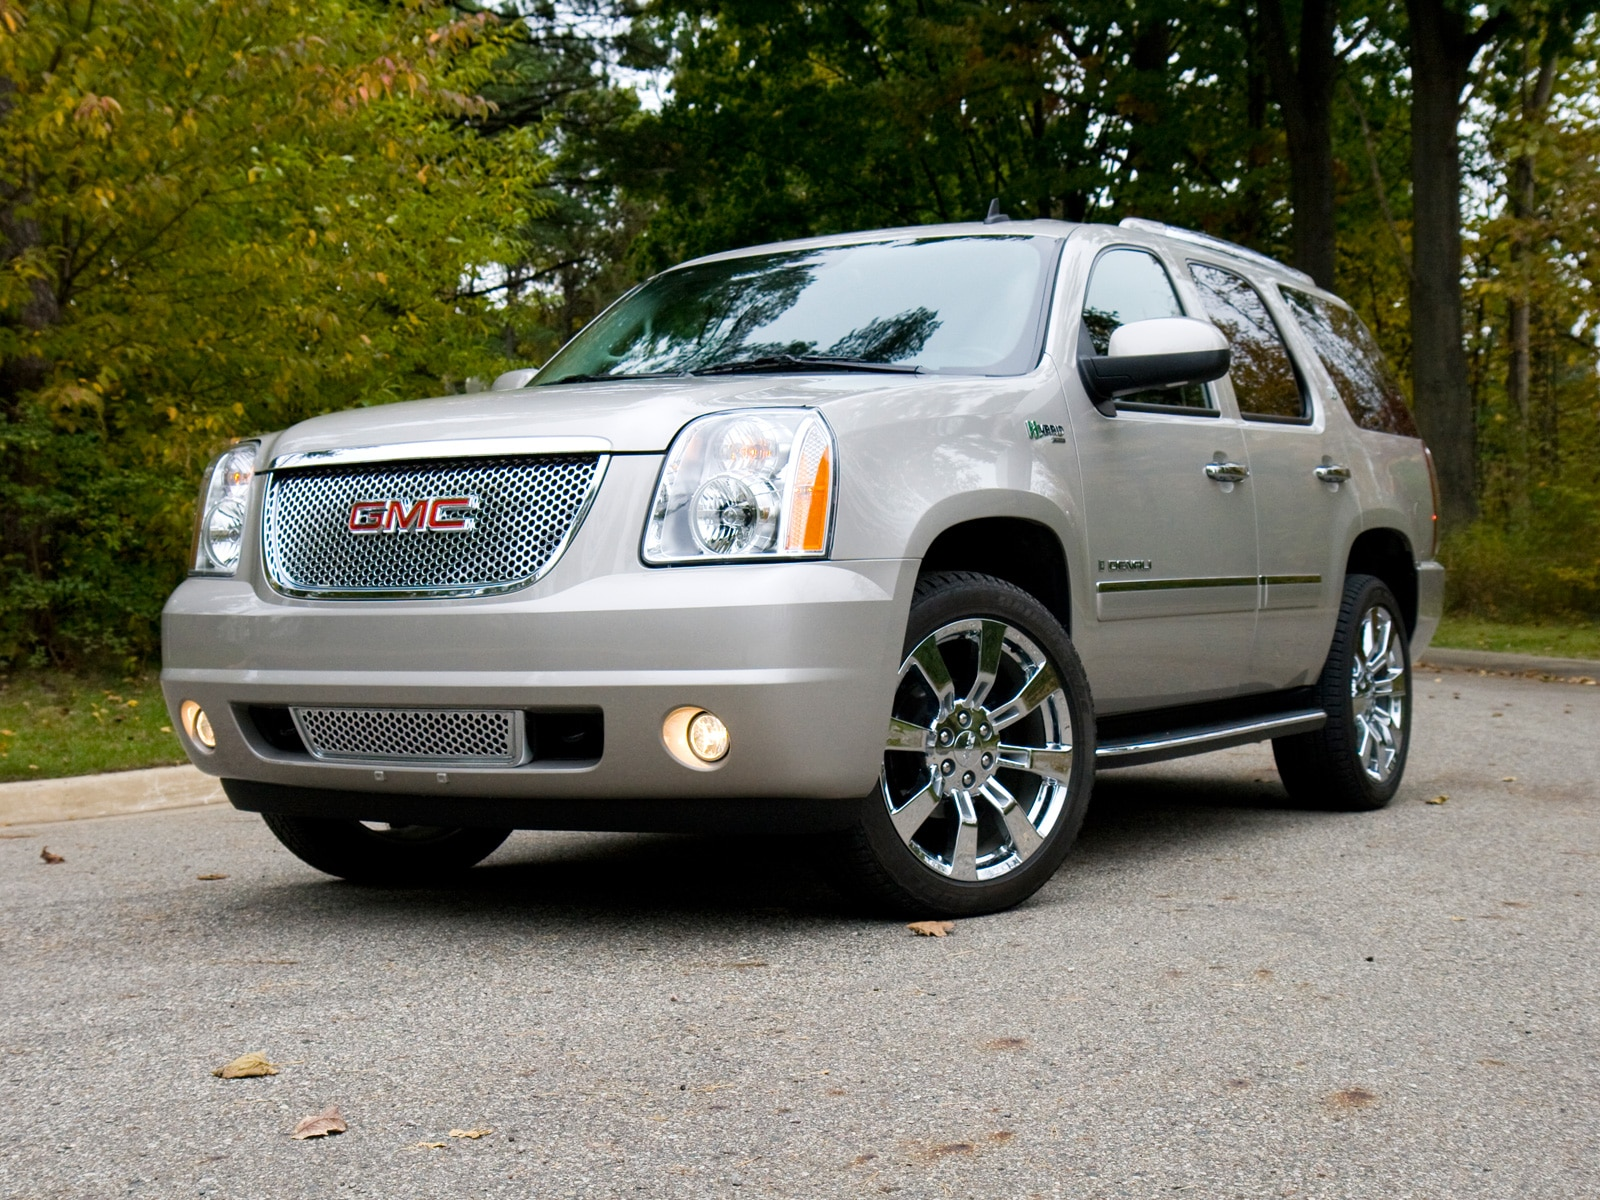 2009 gmc yukon denali hybrid gmc luxury hybrid suv review automobile magazine. Black Bedroom Furniture Sets. Home Design Ideas